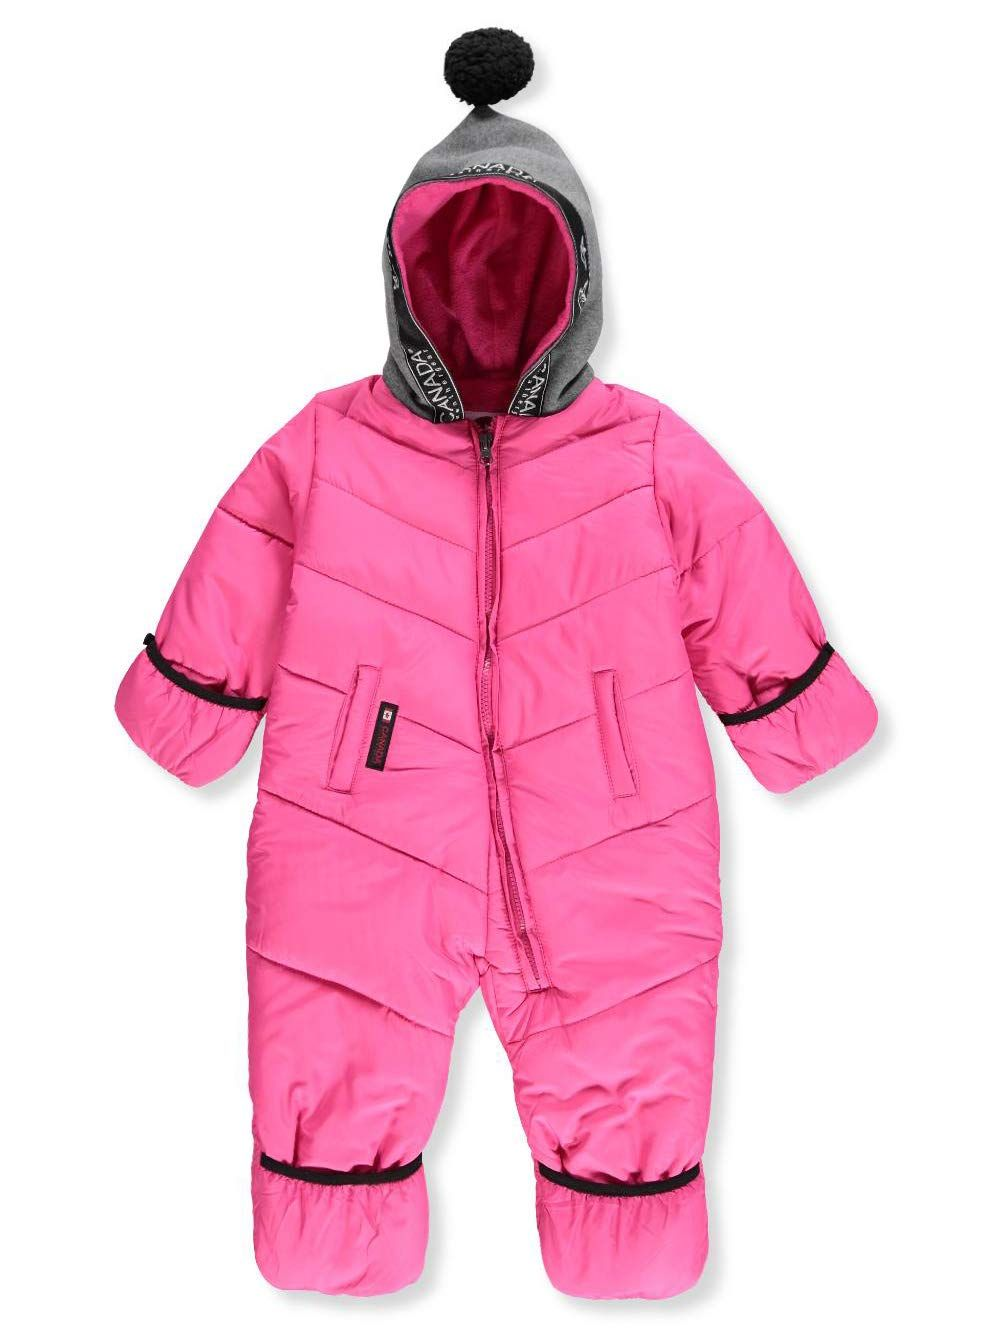 Canada Weather Gear Baby Girls 1piece Snowsuit Fuchsia 12 Months Baby Girl Clothing Baby Girl Fa Baby Girl Clothes Cute Baby Girl Outfits Cute Baby Clothes